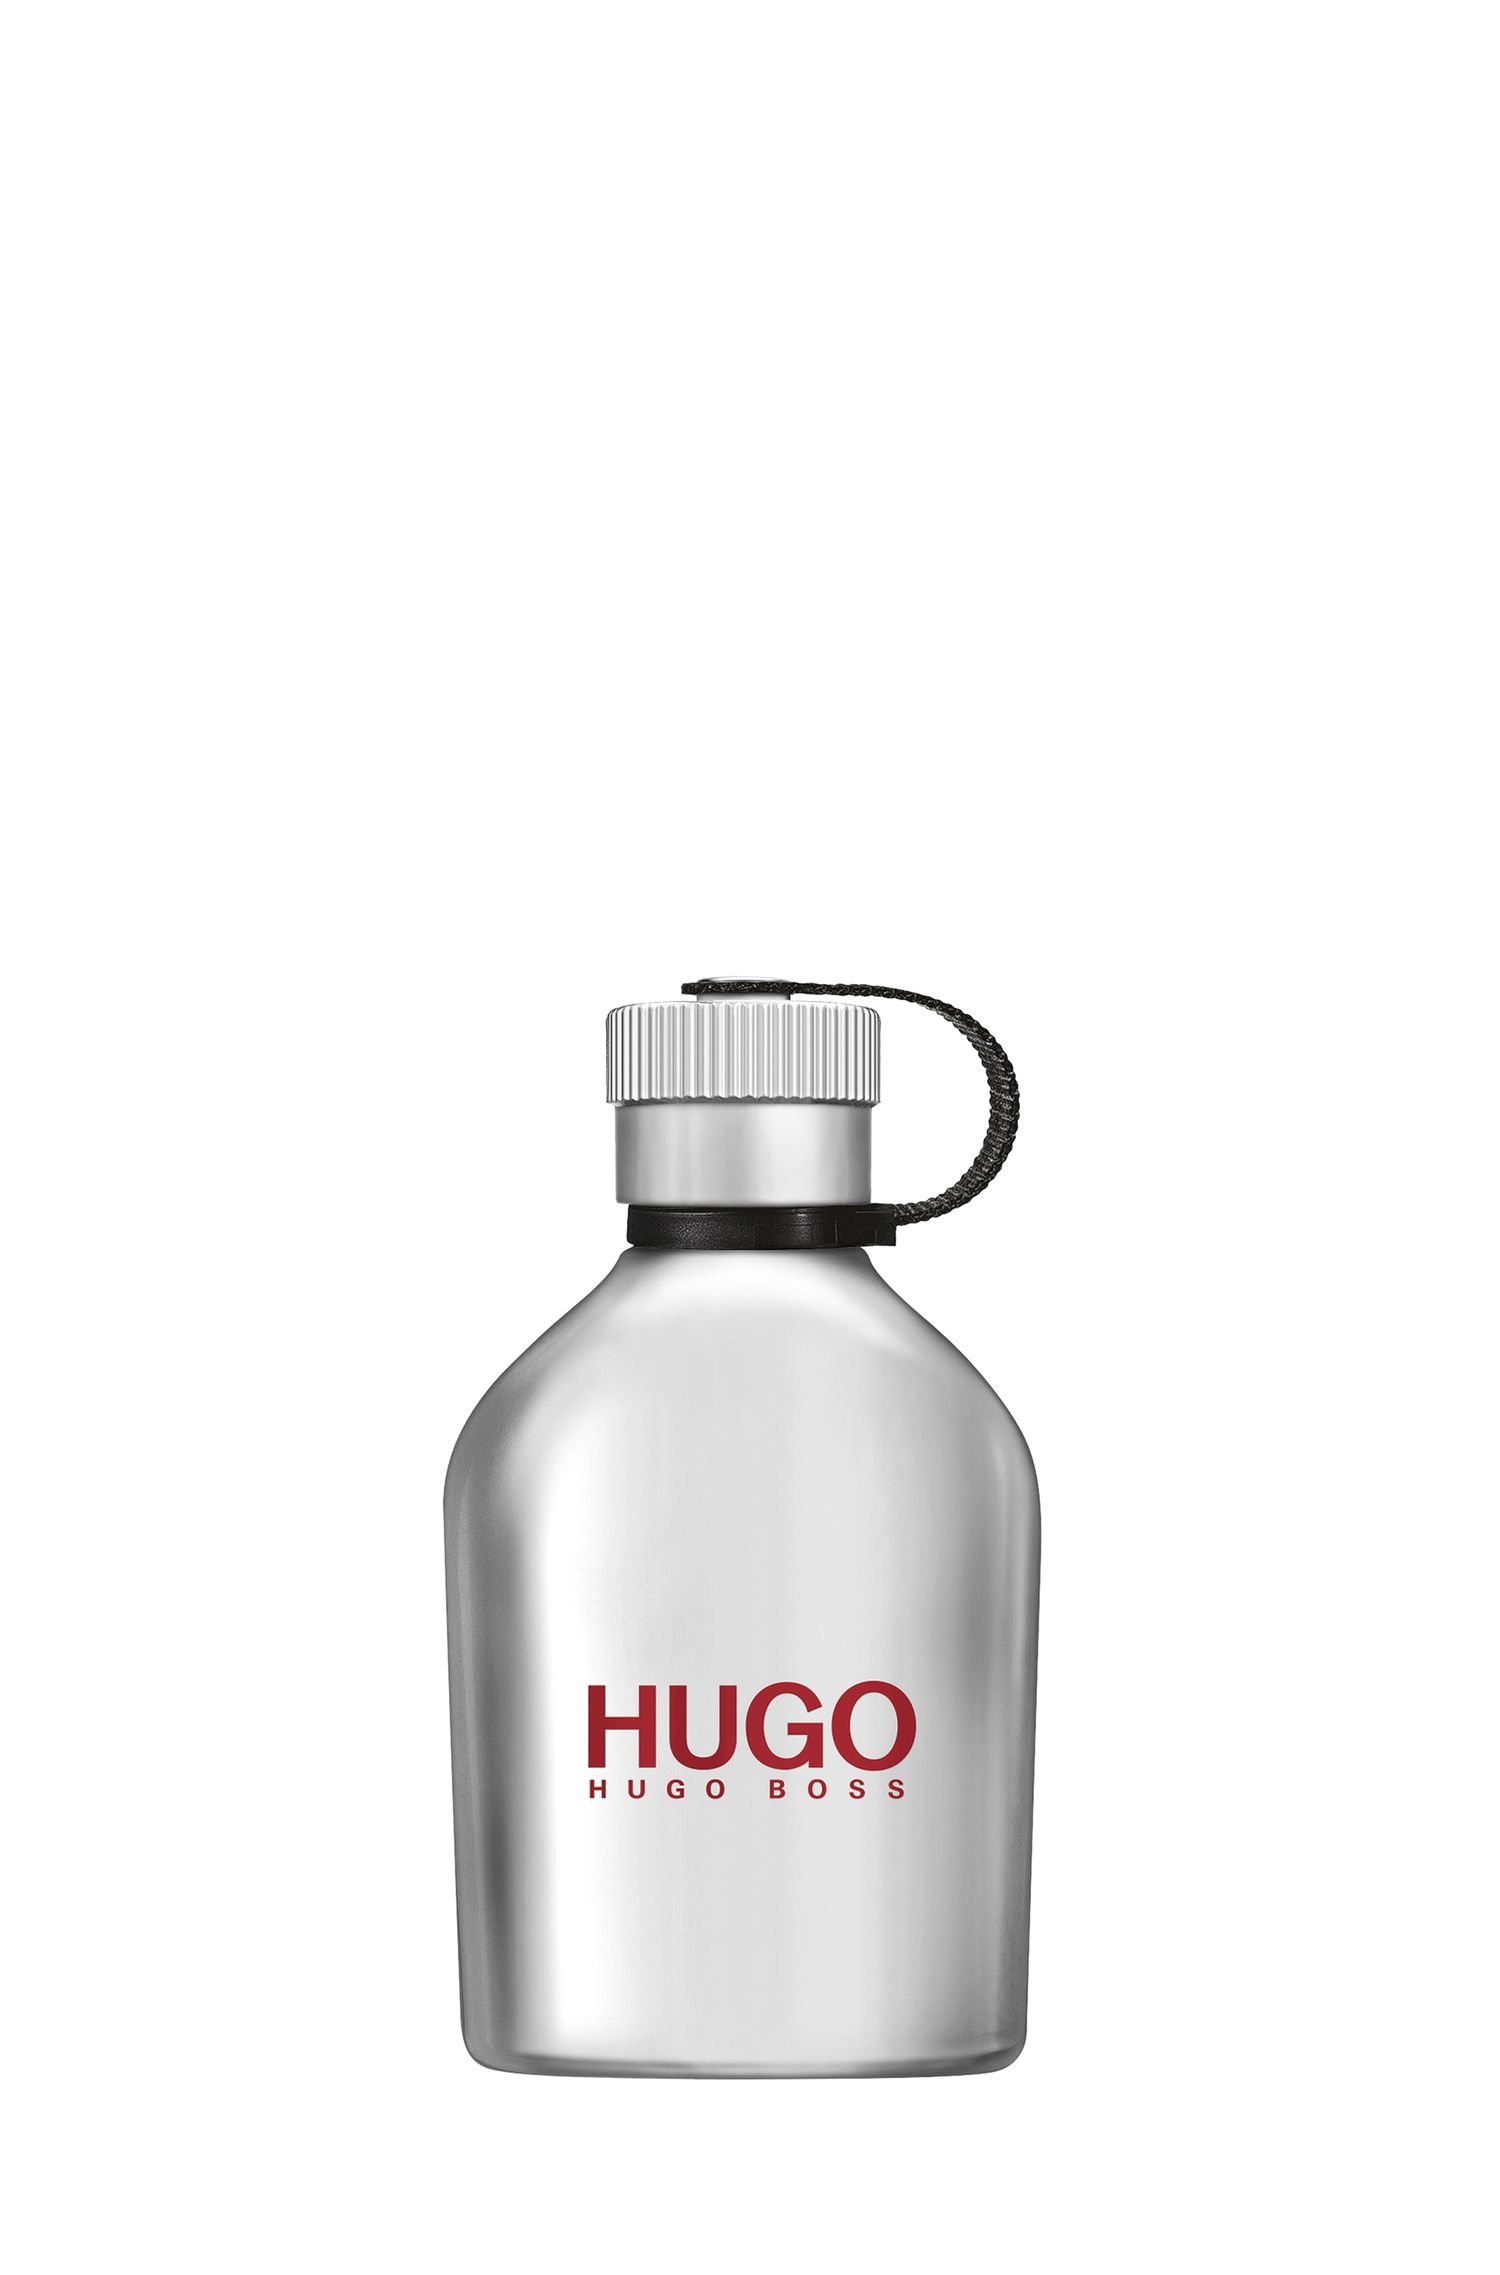 HUGO Iced Eau de Toilette 125 ml, Assorted-Pre-Pack